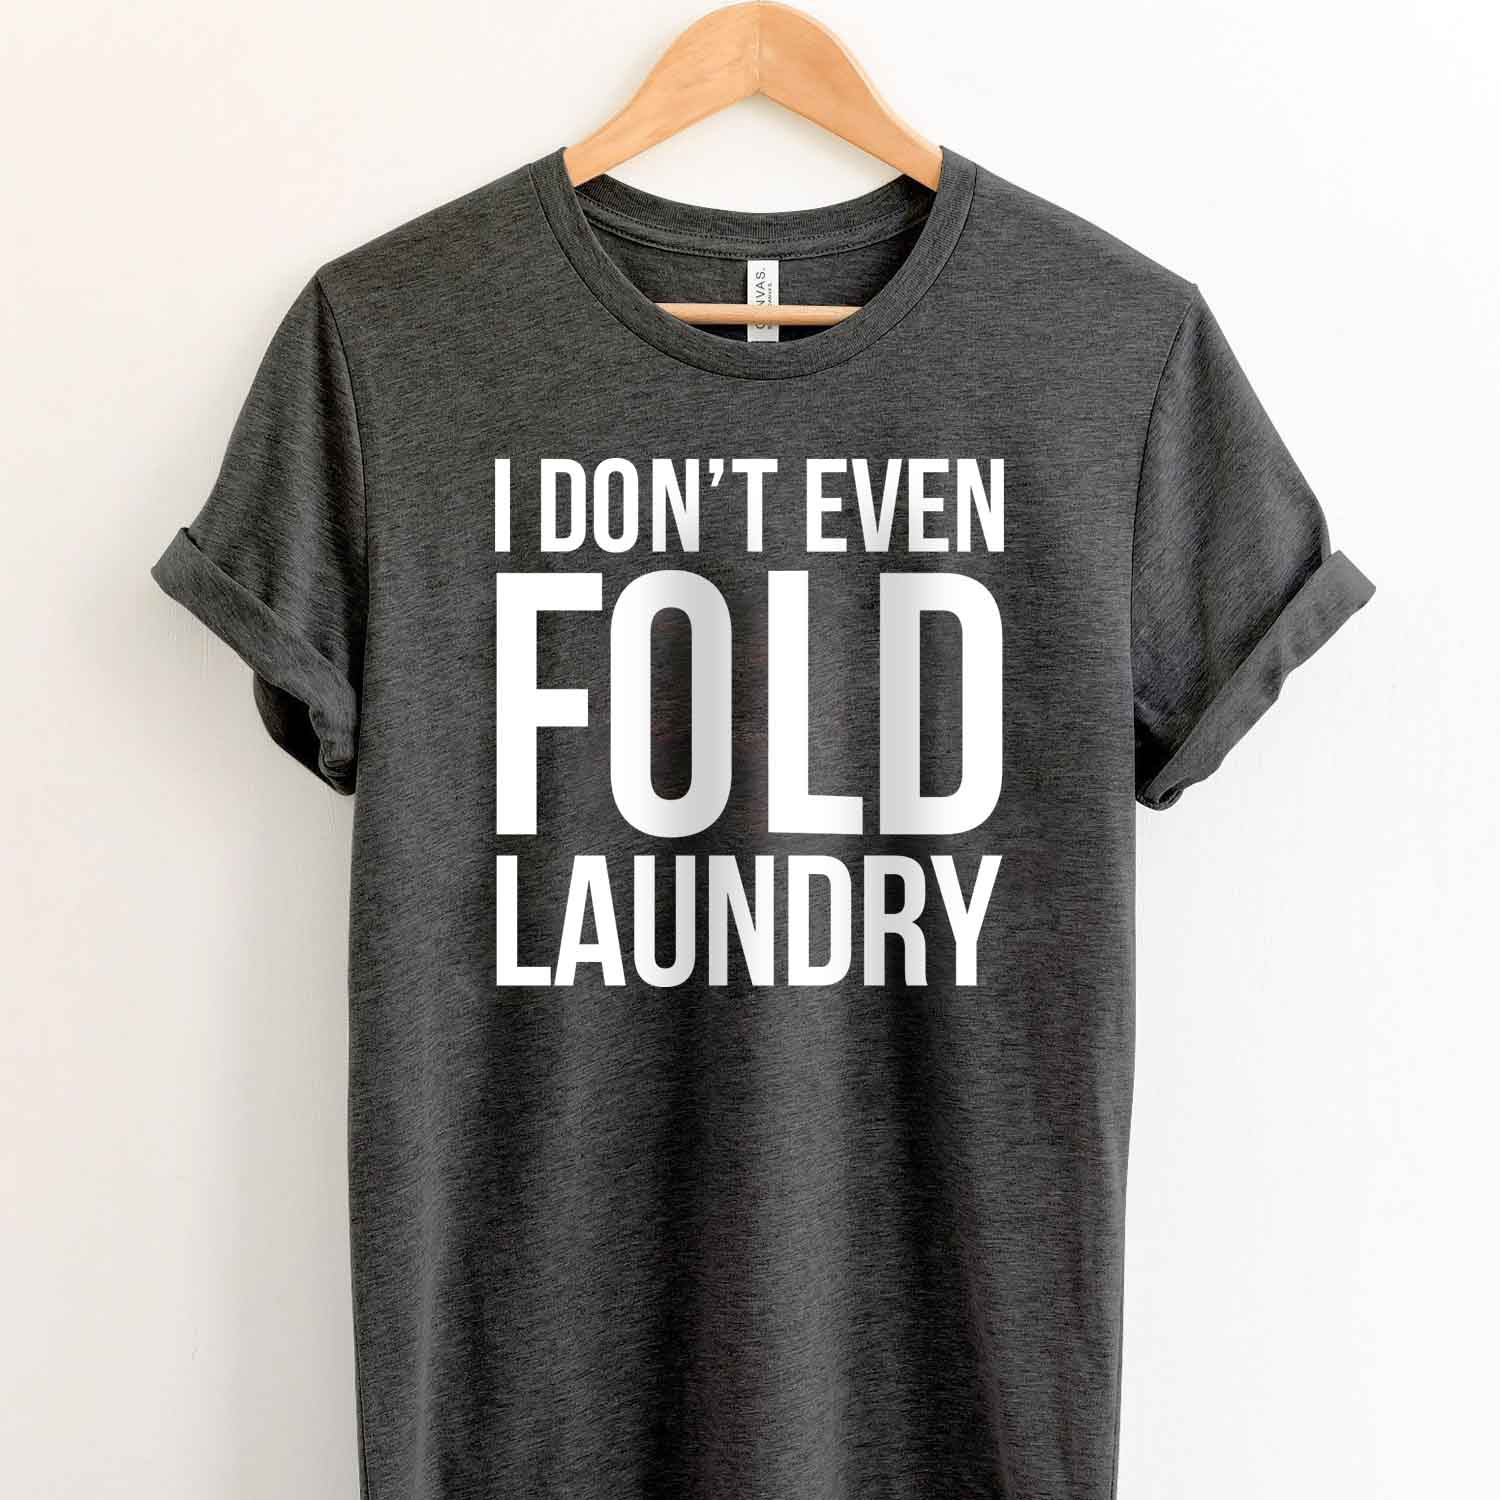 I Don't Even Fold Laundry casino lucky t shirt